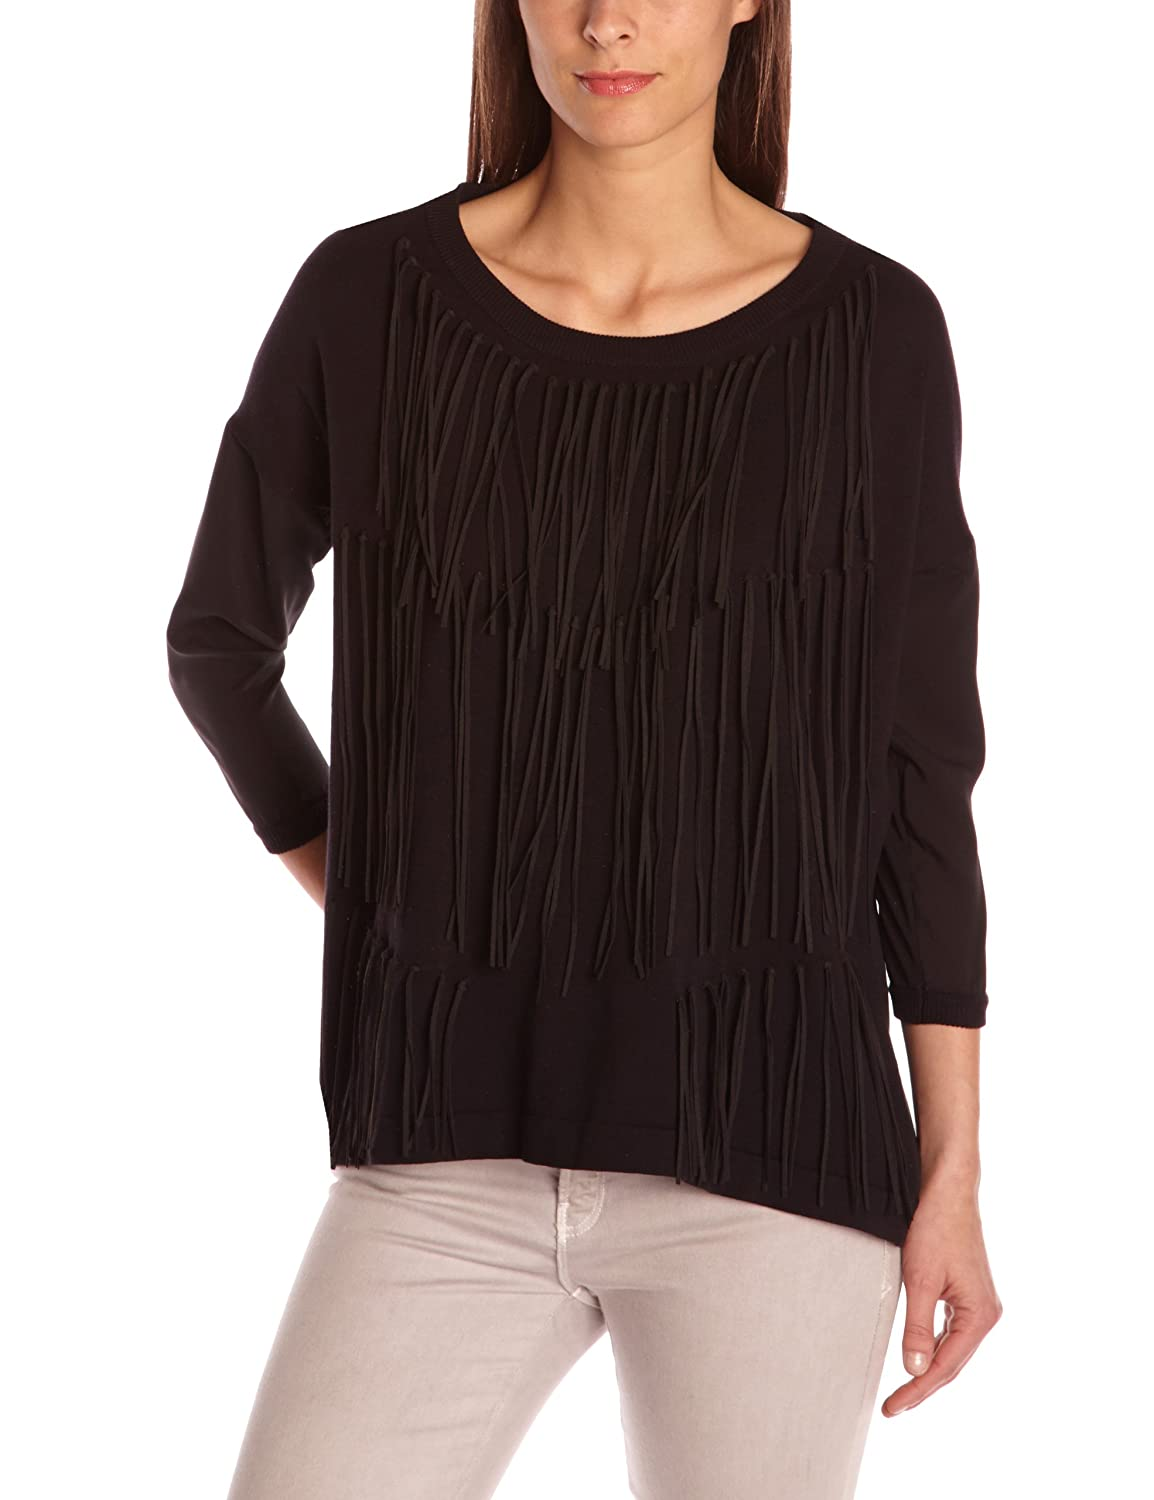 Eleven Paris Damen Sweater ANGIE WOMEN, V-Ausschnitt Schwarz (M06 Black) 13S2KN03